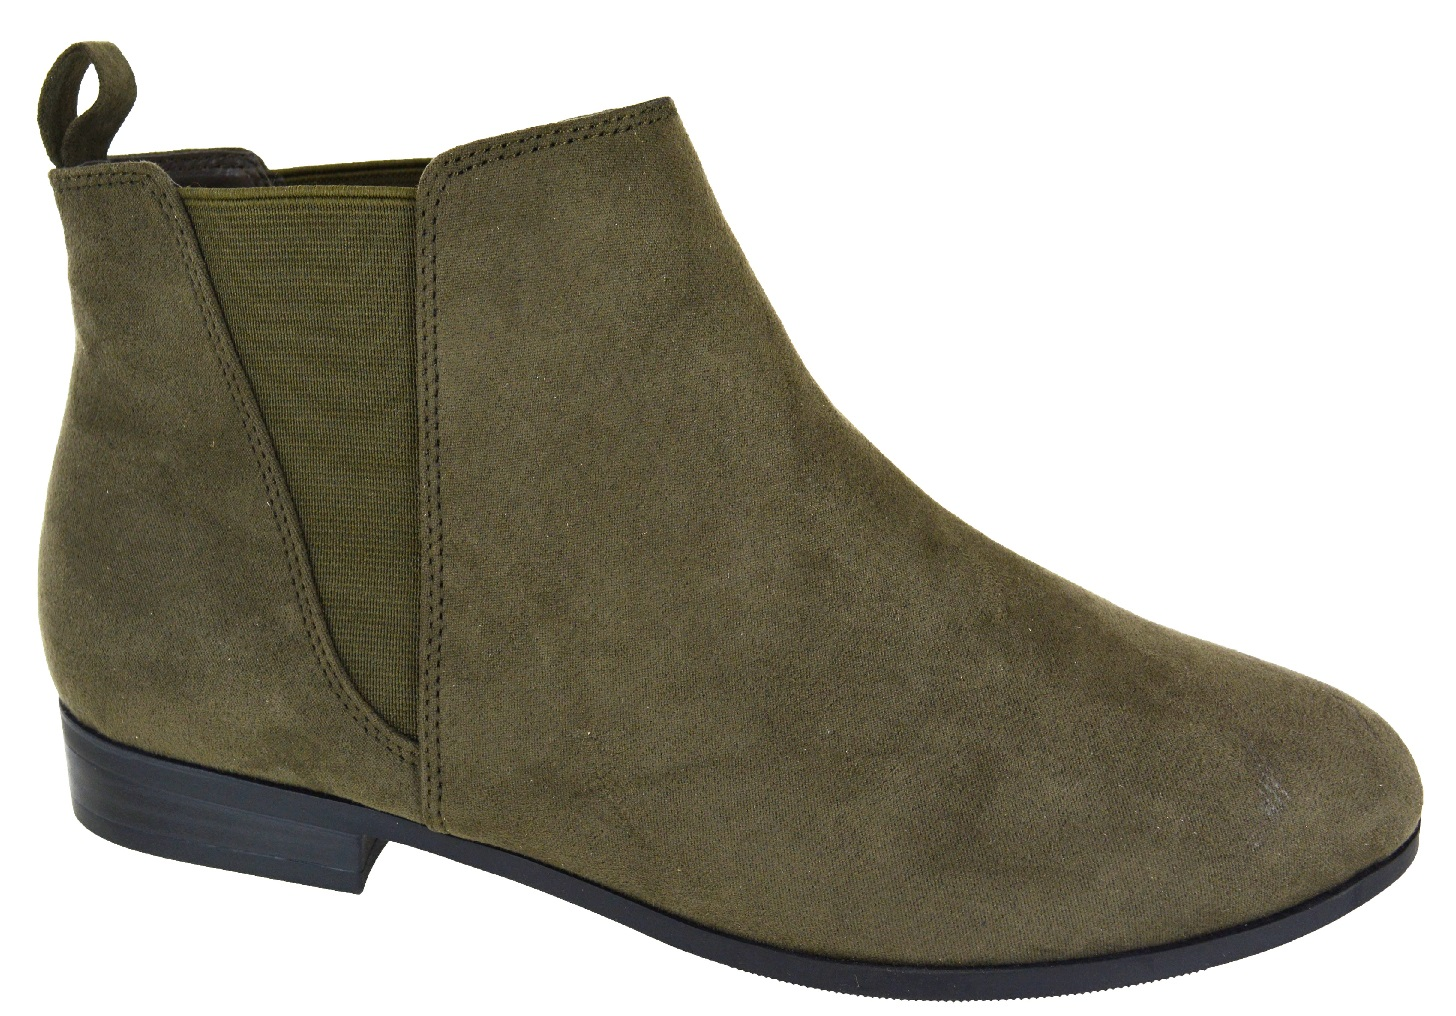 LADIES-WOMENS-FLAT-ANKLE-CHELSEA-CAUSAL-LOW-HEEL-DEALER-PULL-ON-SHOES-BOOTS-SIZE